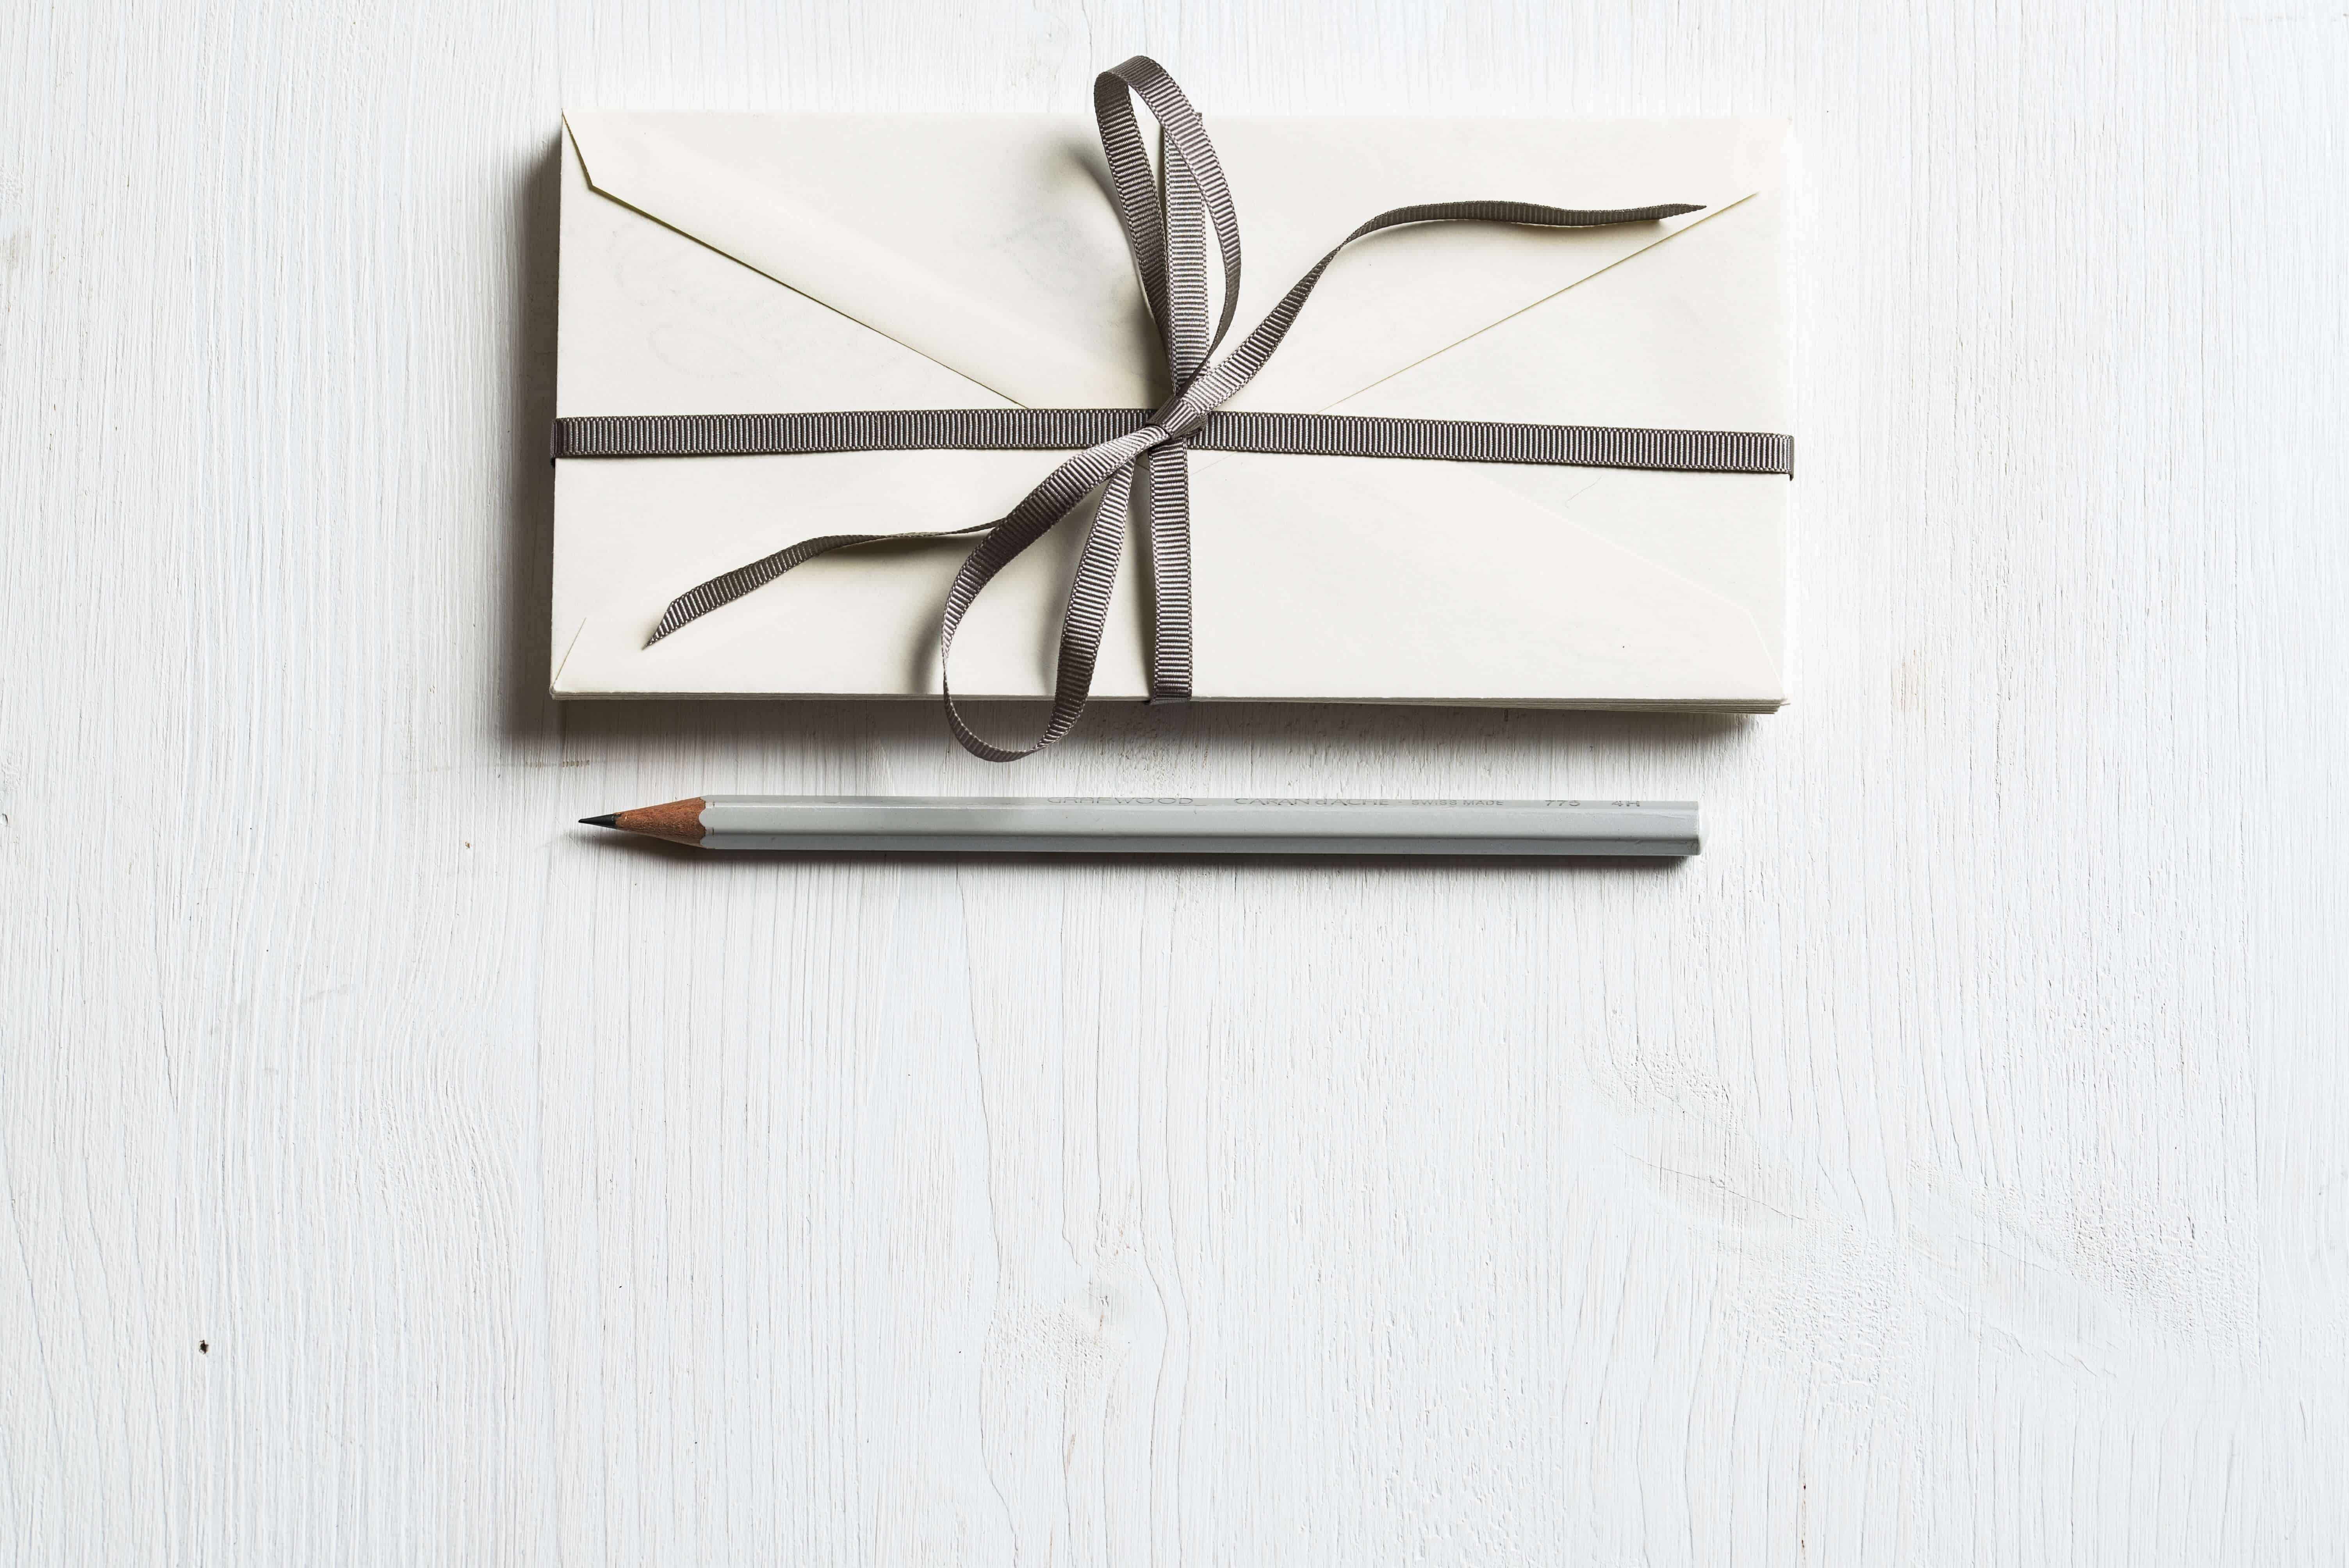 designer pencil and gift